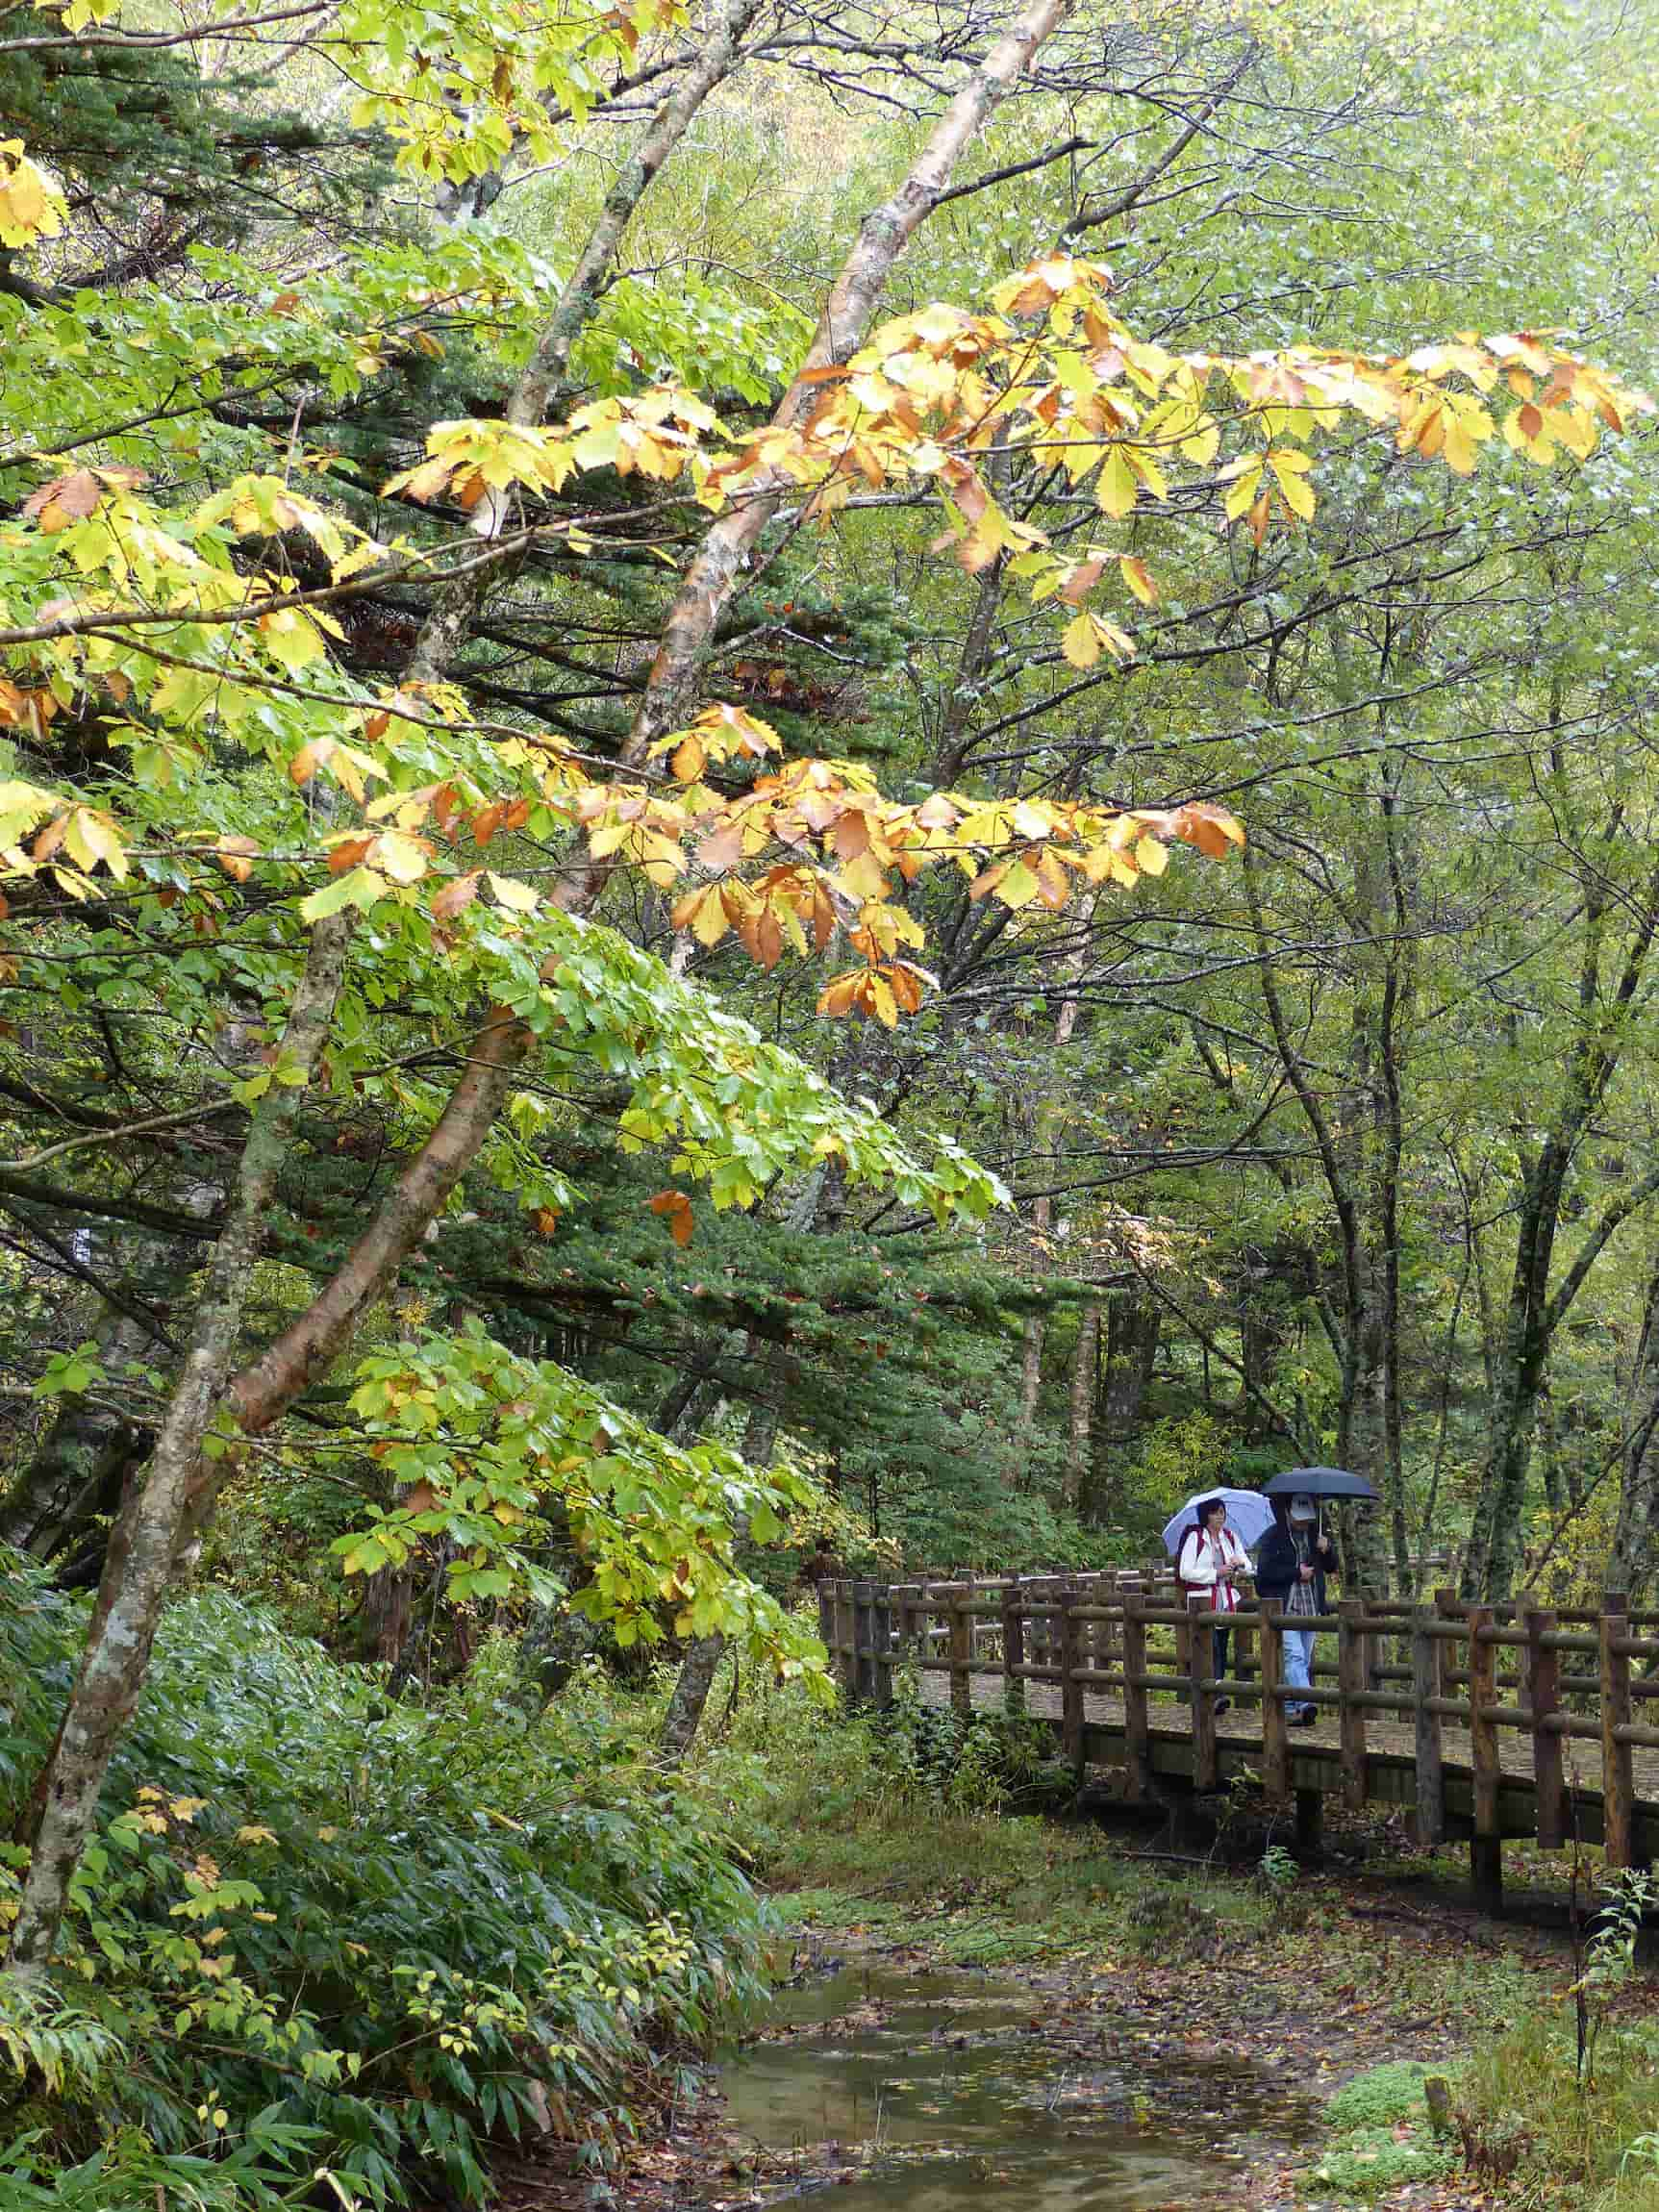 Boardwalk in a wood, people with umbrellas